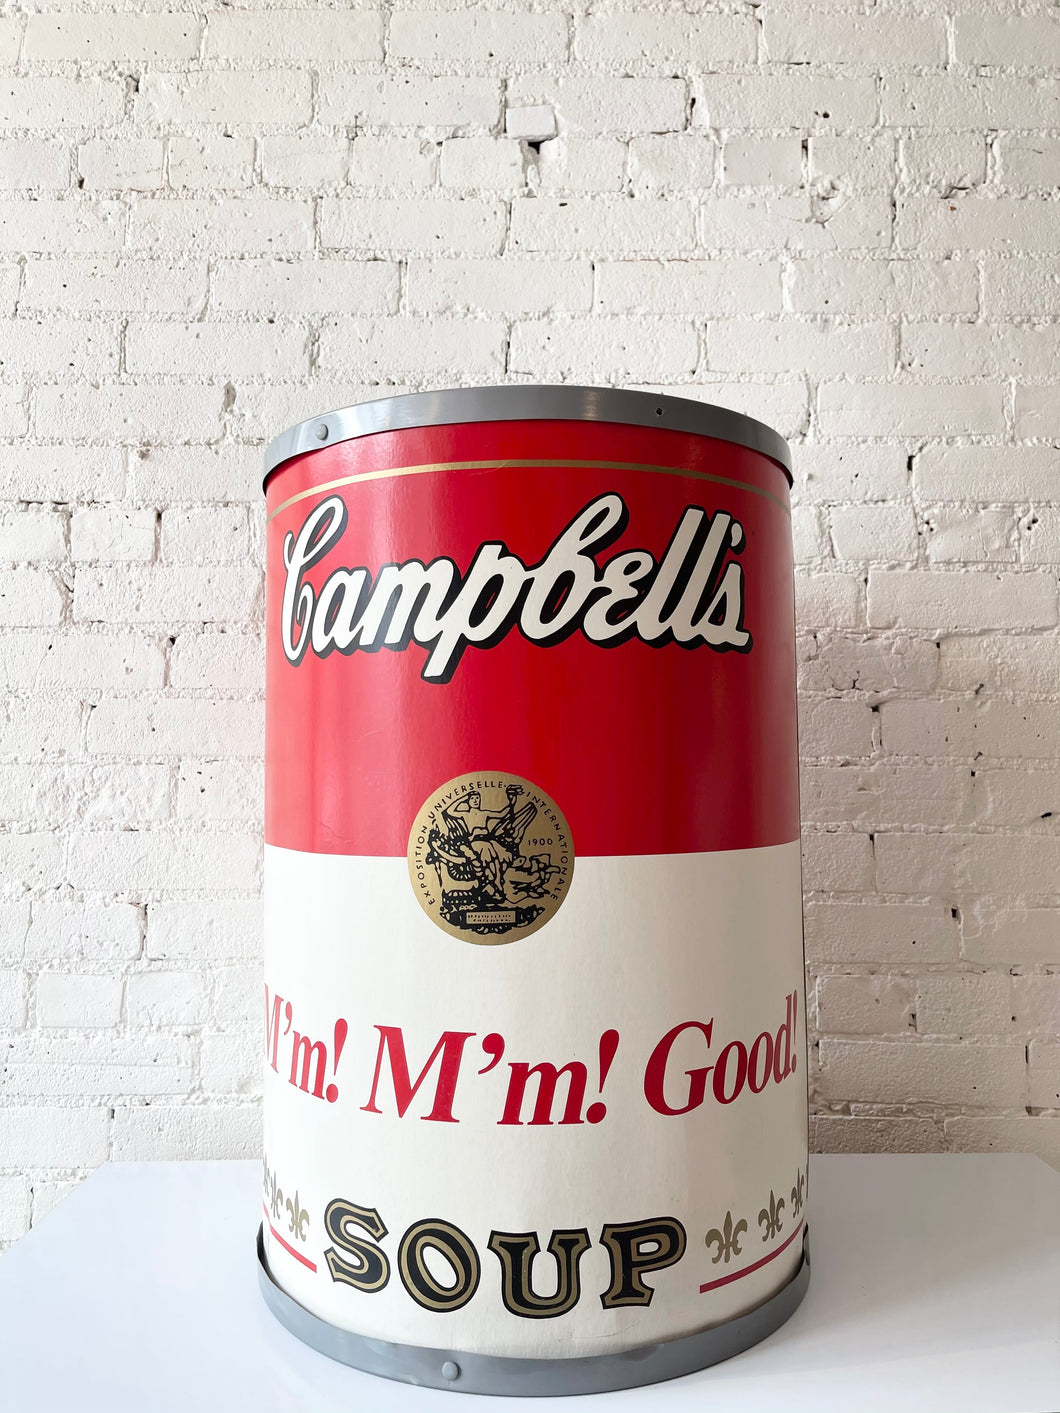 Vintage Campbell's Soup Can Display